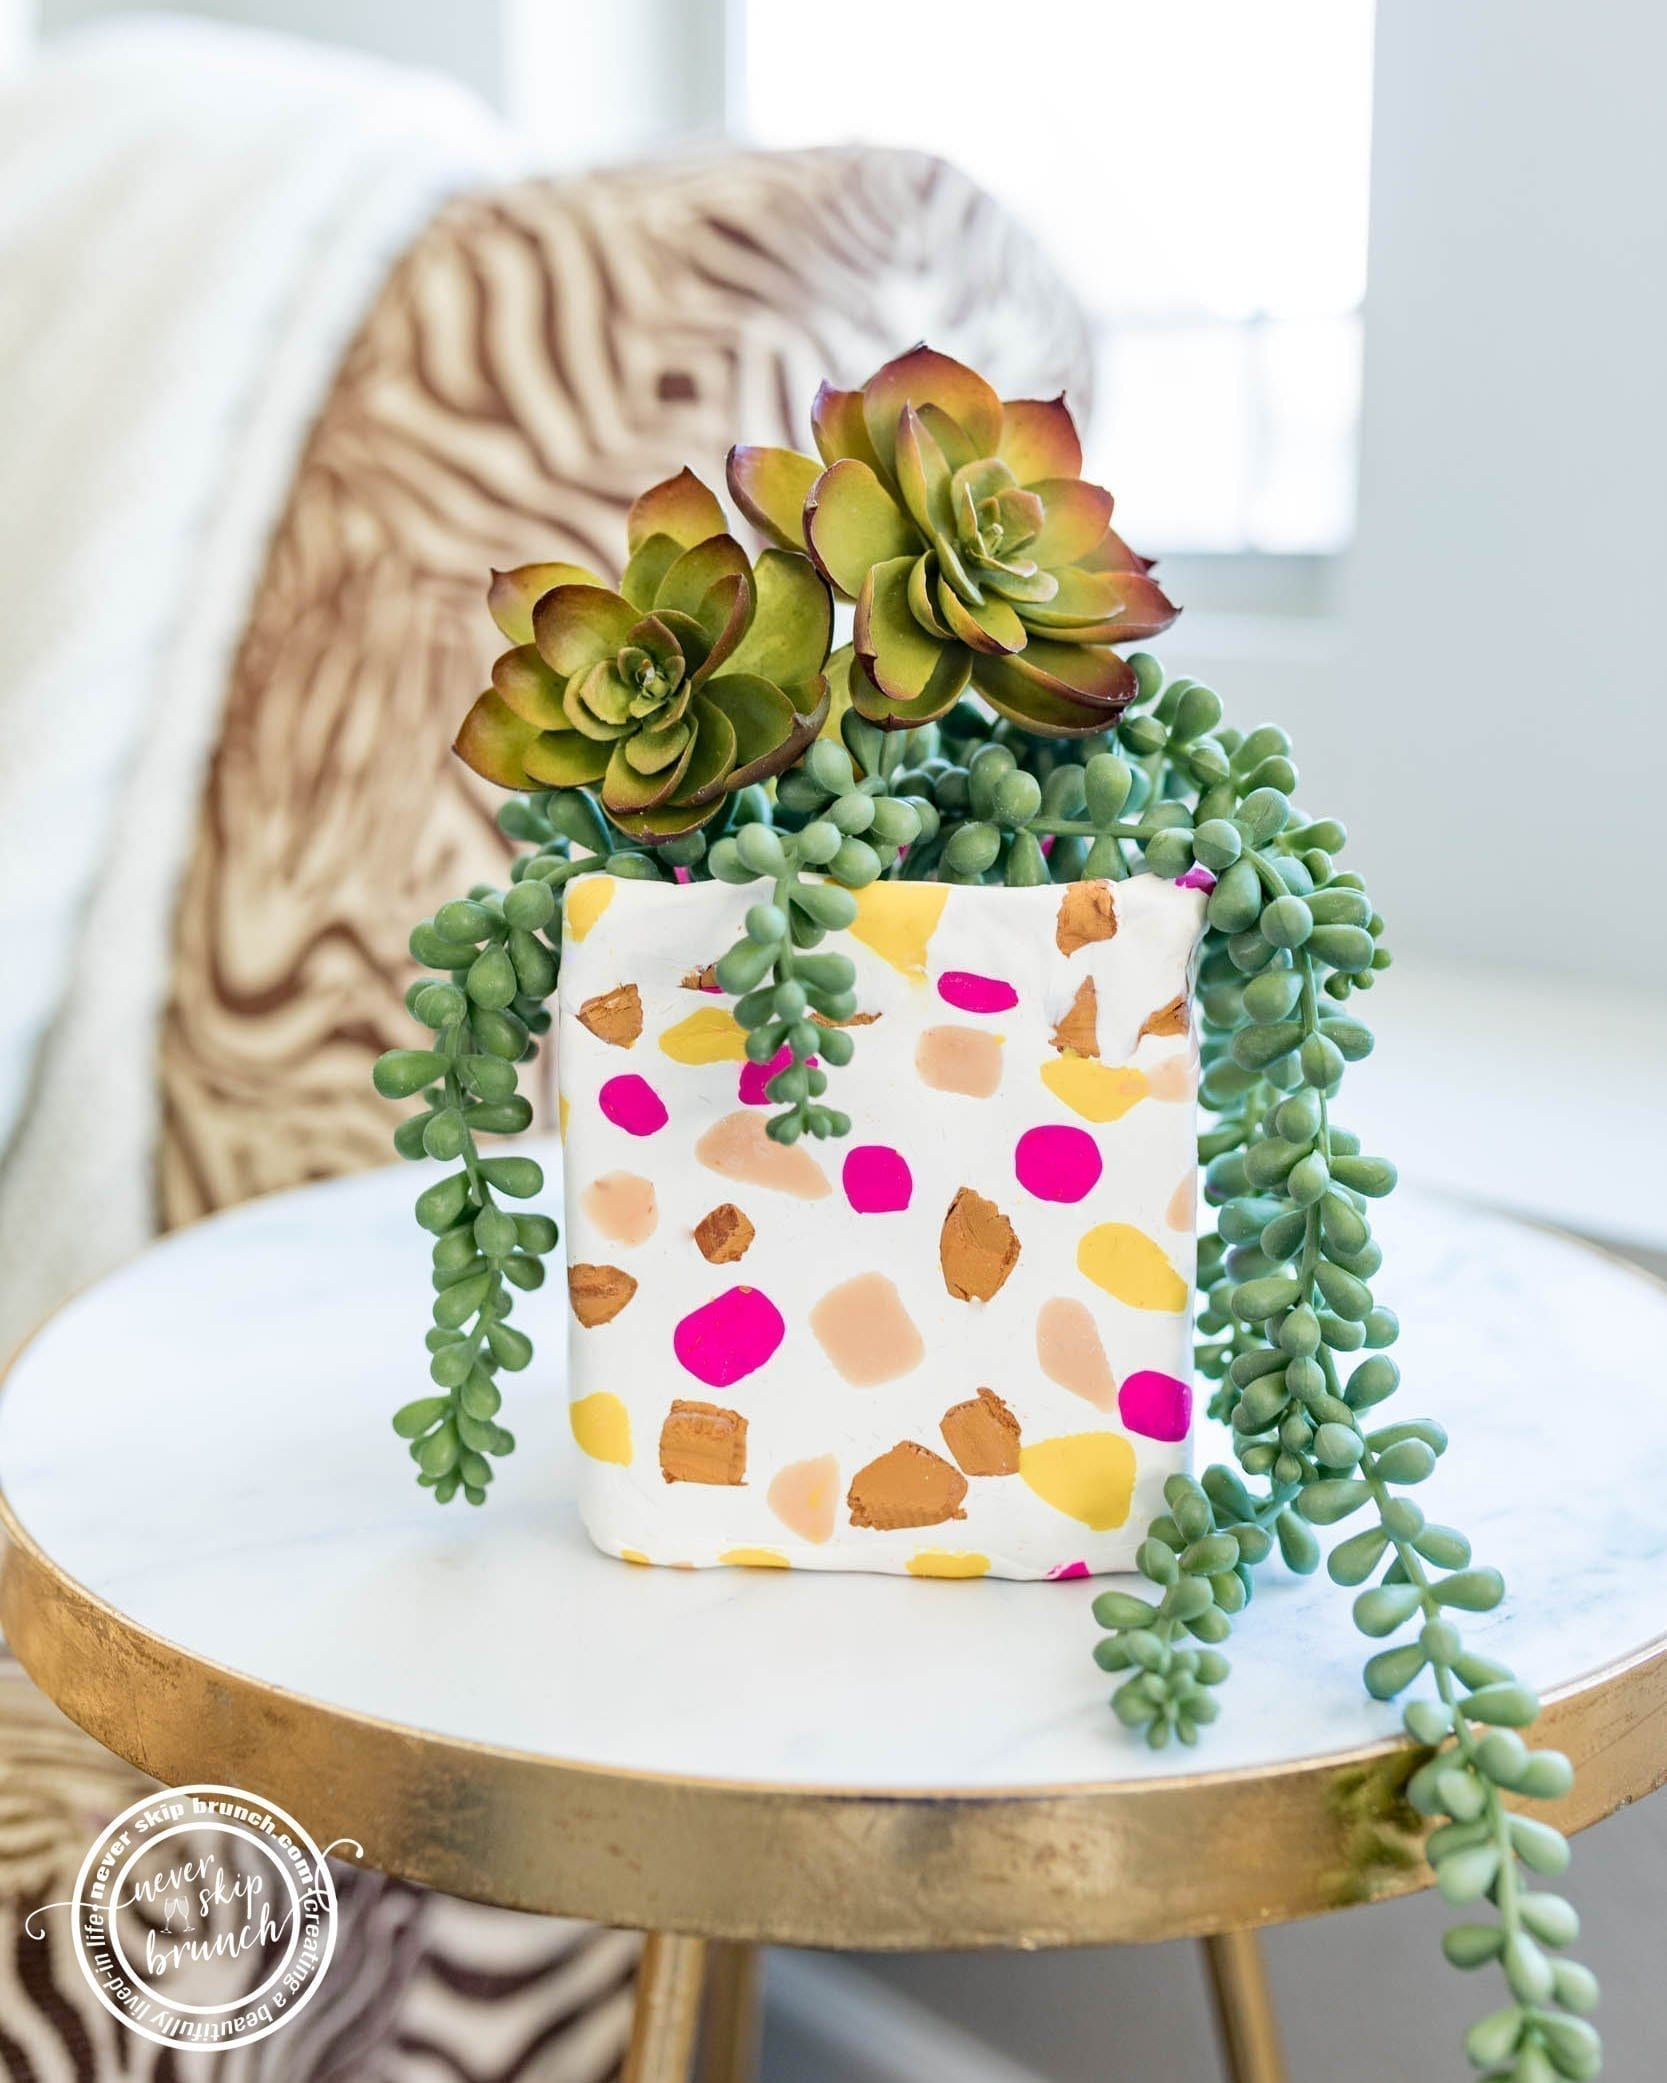 SO EASY! Terrazzo planter diy with oven bake clay | faux terrazzo clay planter diy | planter diy | diy decor | terrazzo decor | diy clay planter with oven bake clay | polymer clay terrazzo | Never Skip Brunch by Cara Newhart | #home #decor #summer #terrazzo